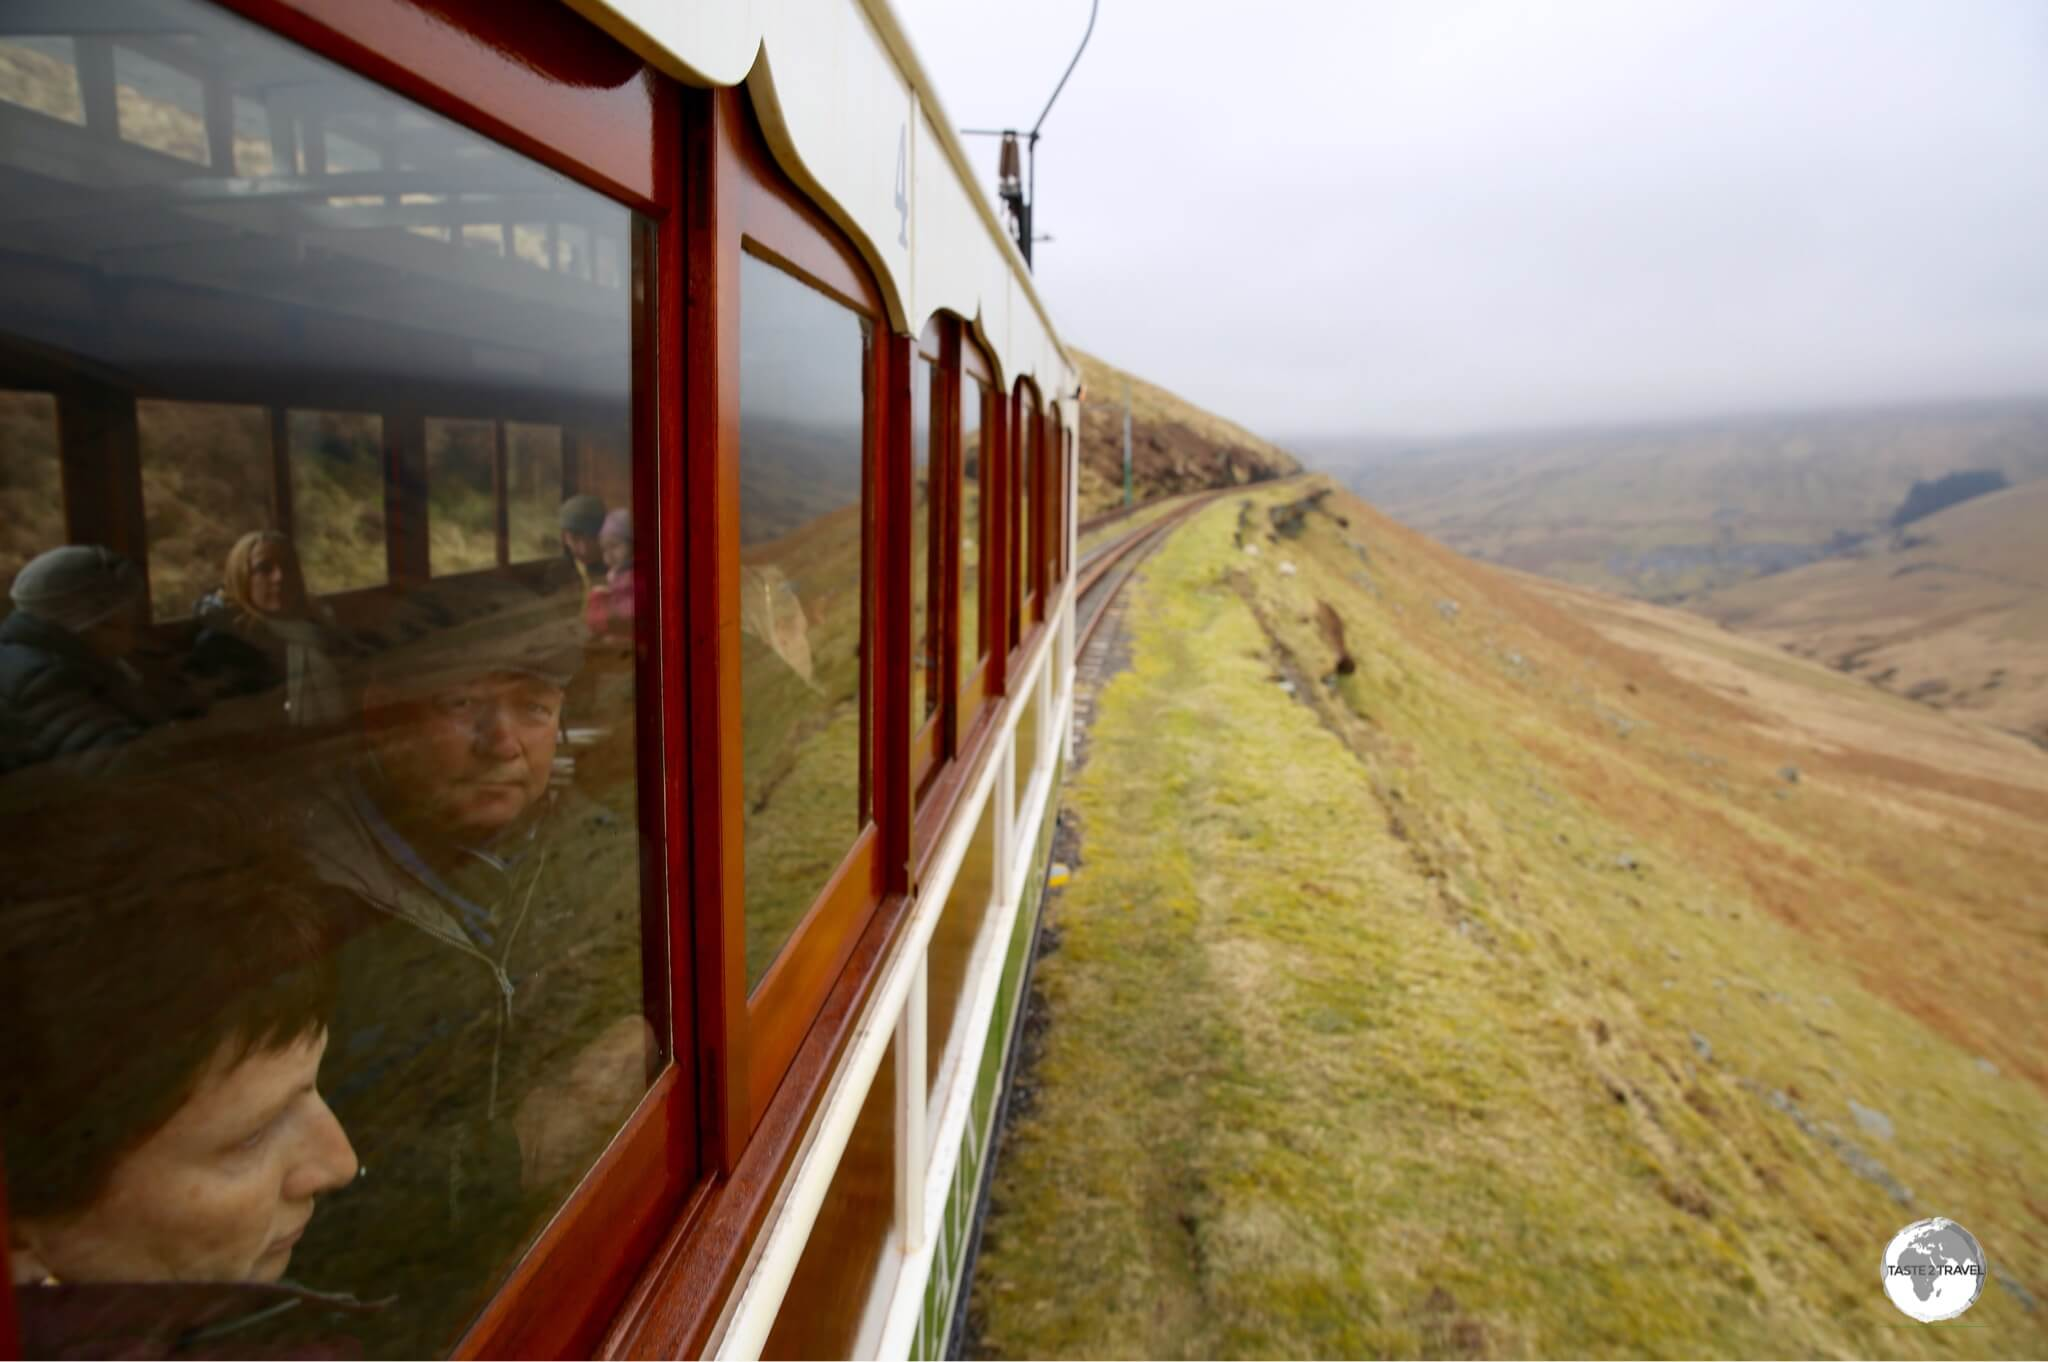 The Snaefell mountain railway conveys passengers to thwe loftiest point on the island - Mount Snaefell (620m / 2,037 feet) above sea level.